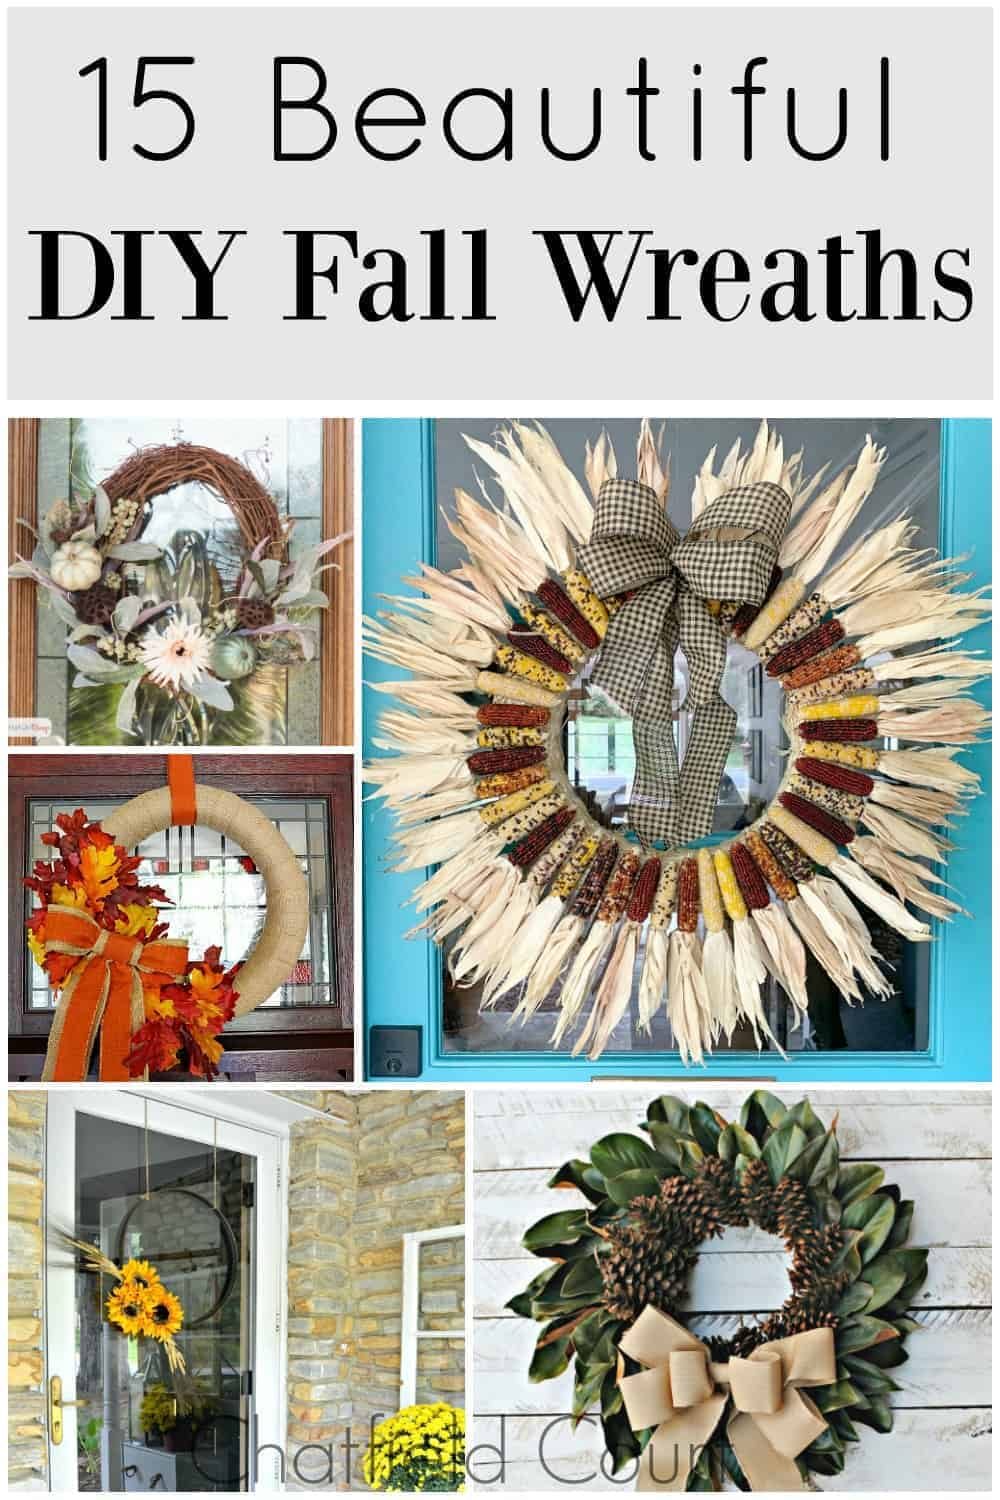 collage of DIY fall wreaths with a large graphic